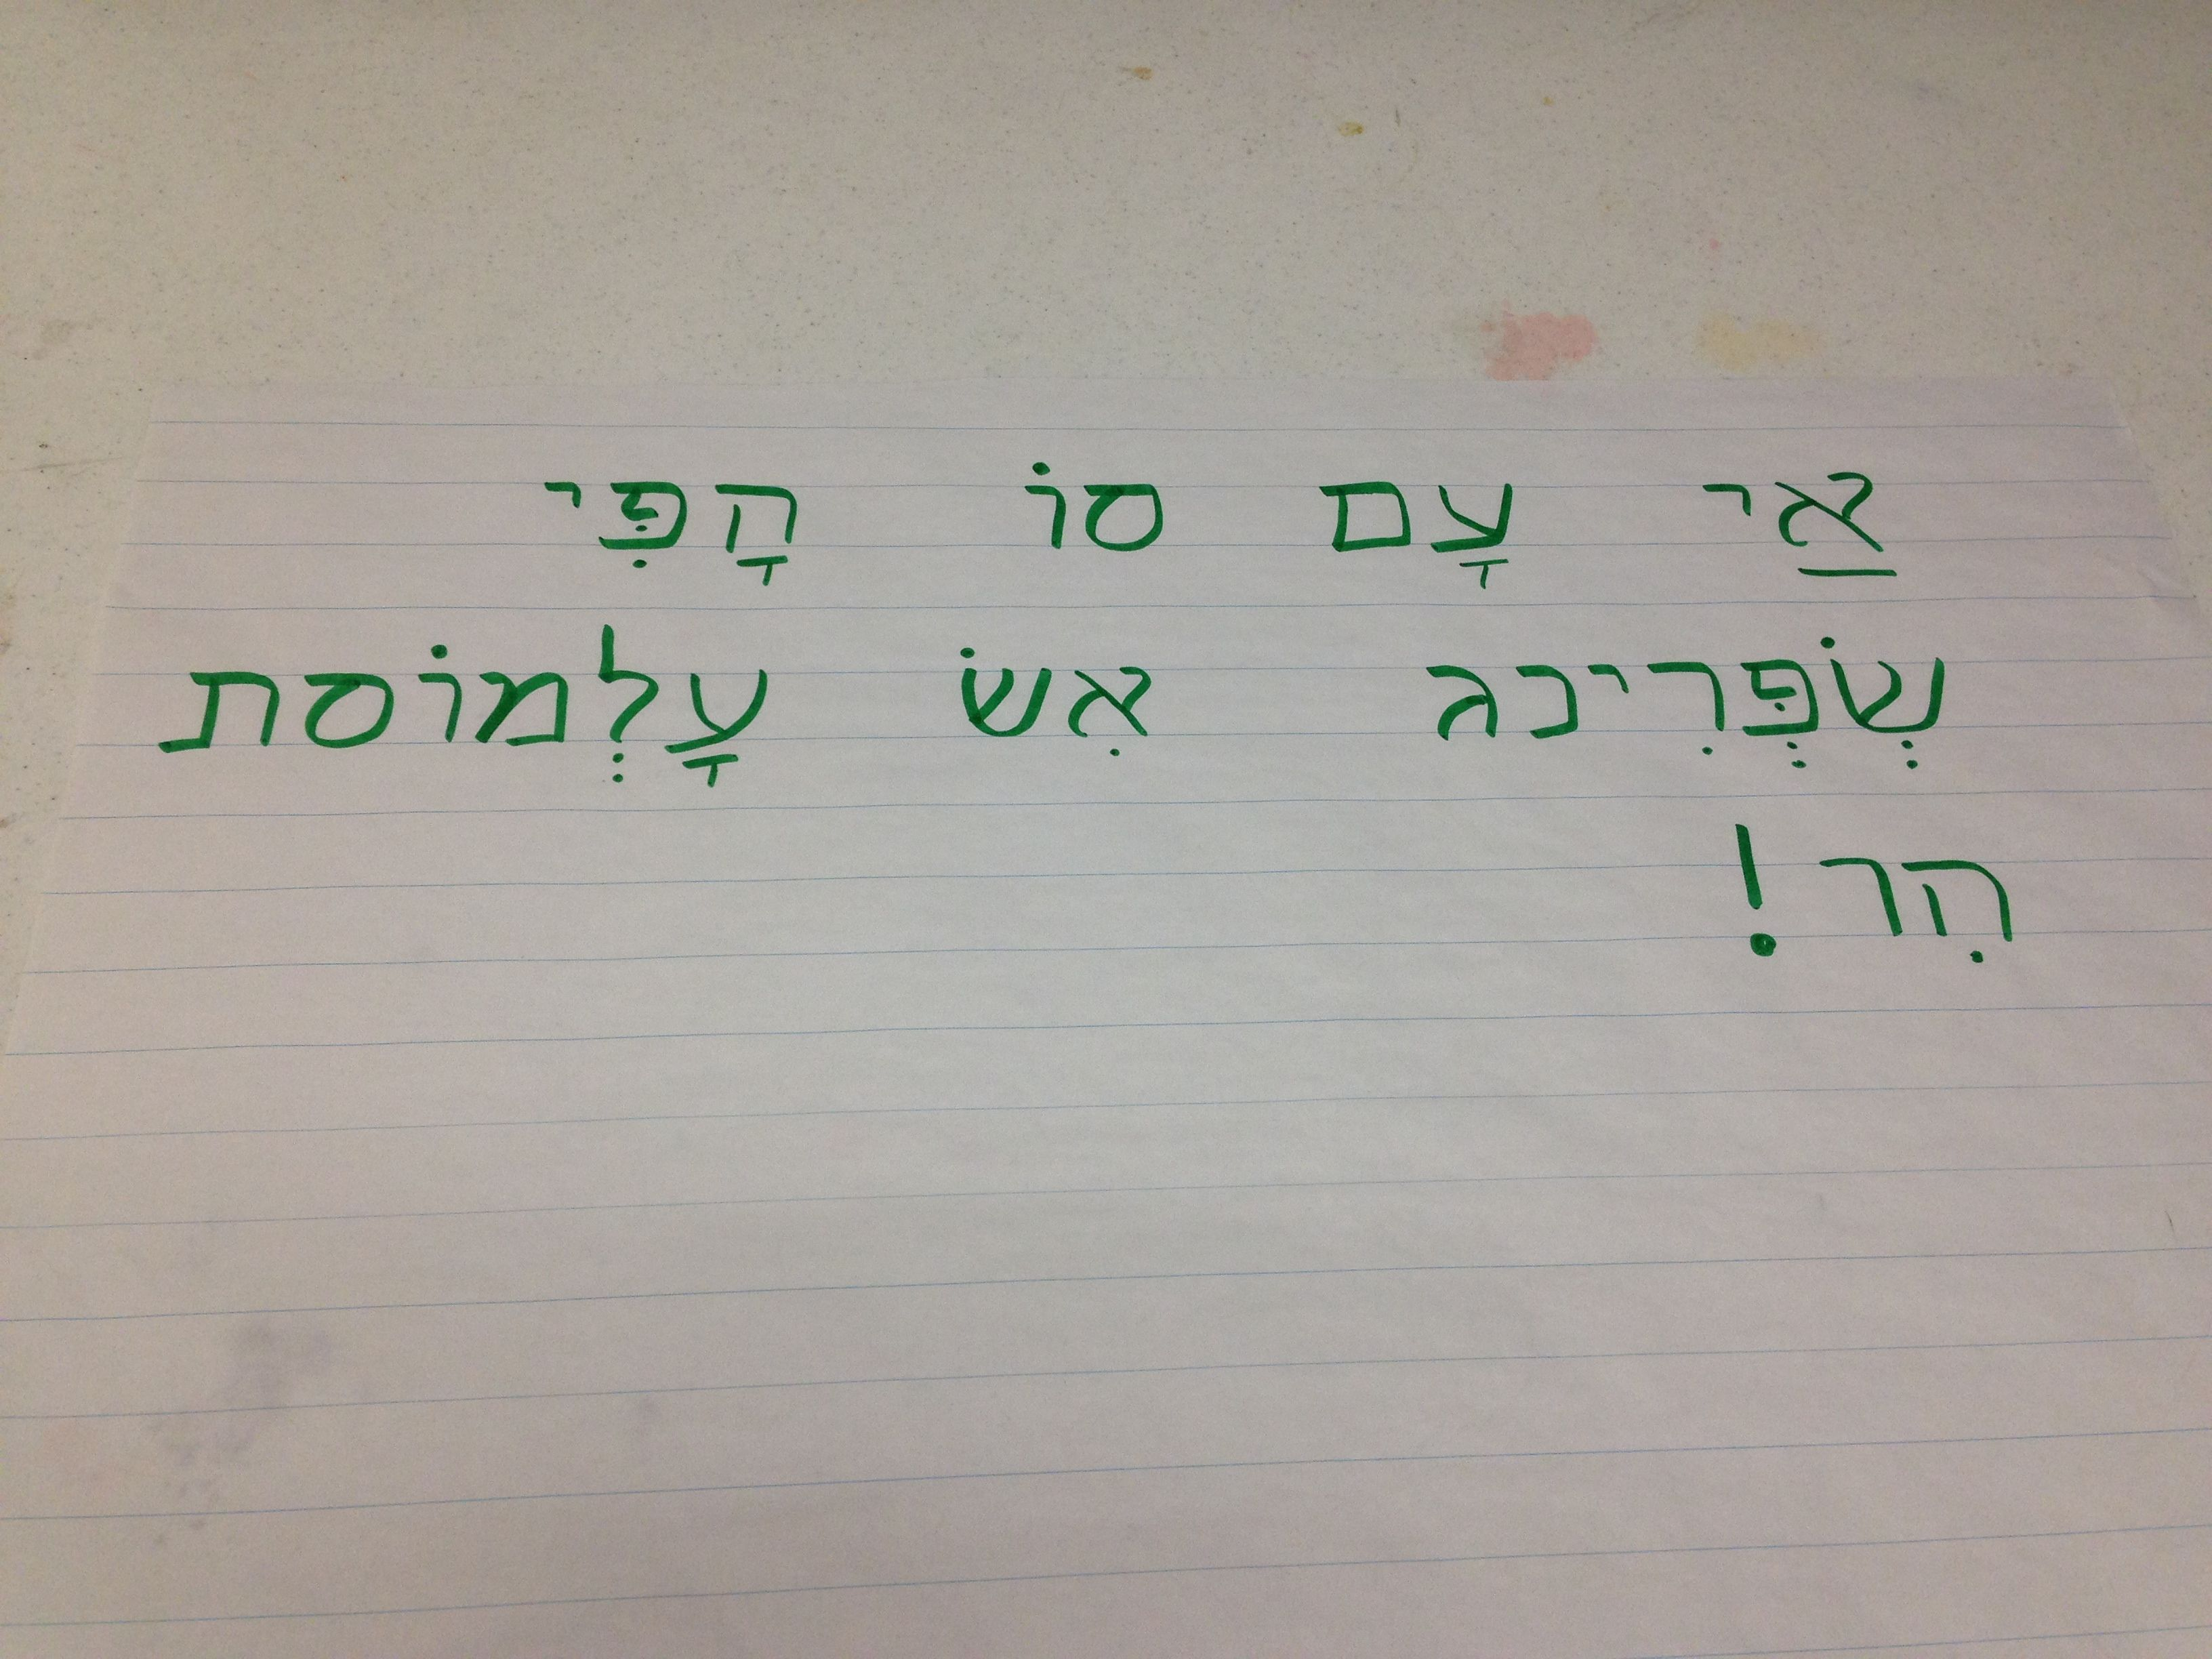 More Hebrew Decoding Practice Heblish English Words